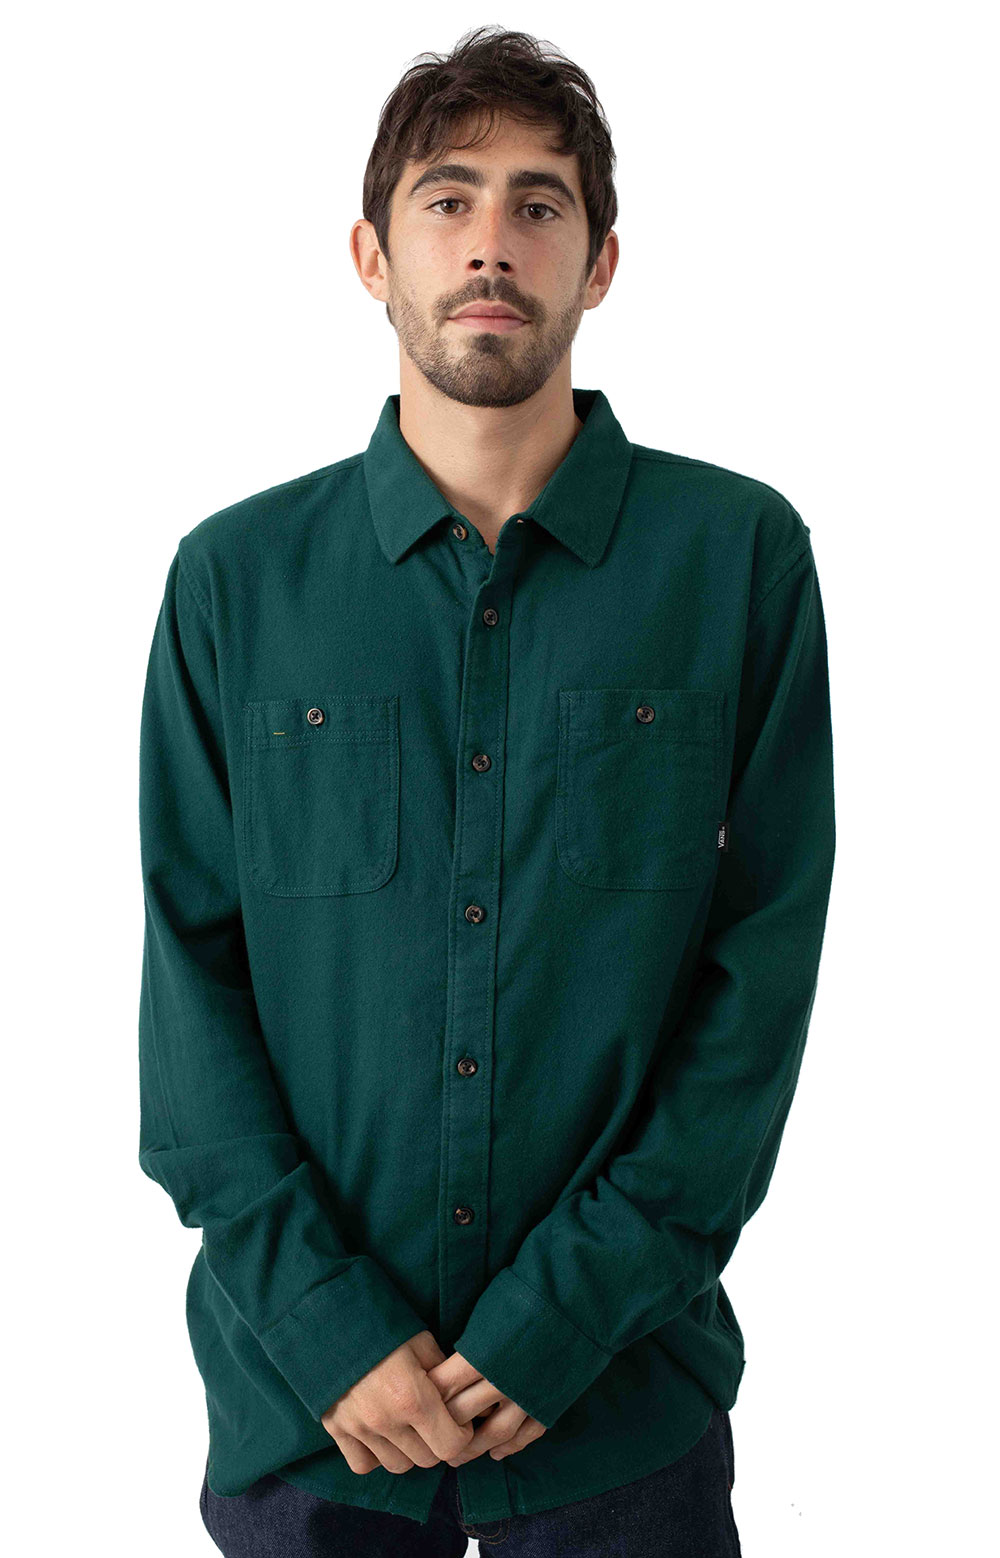 Vans 77298 Banfield III Button-Up Shirt - Trekking Green